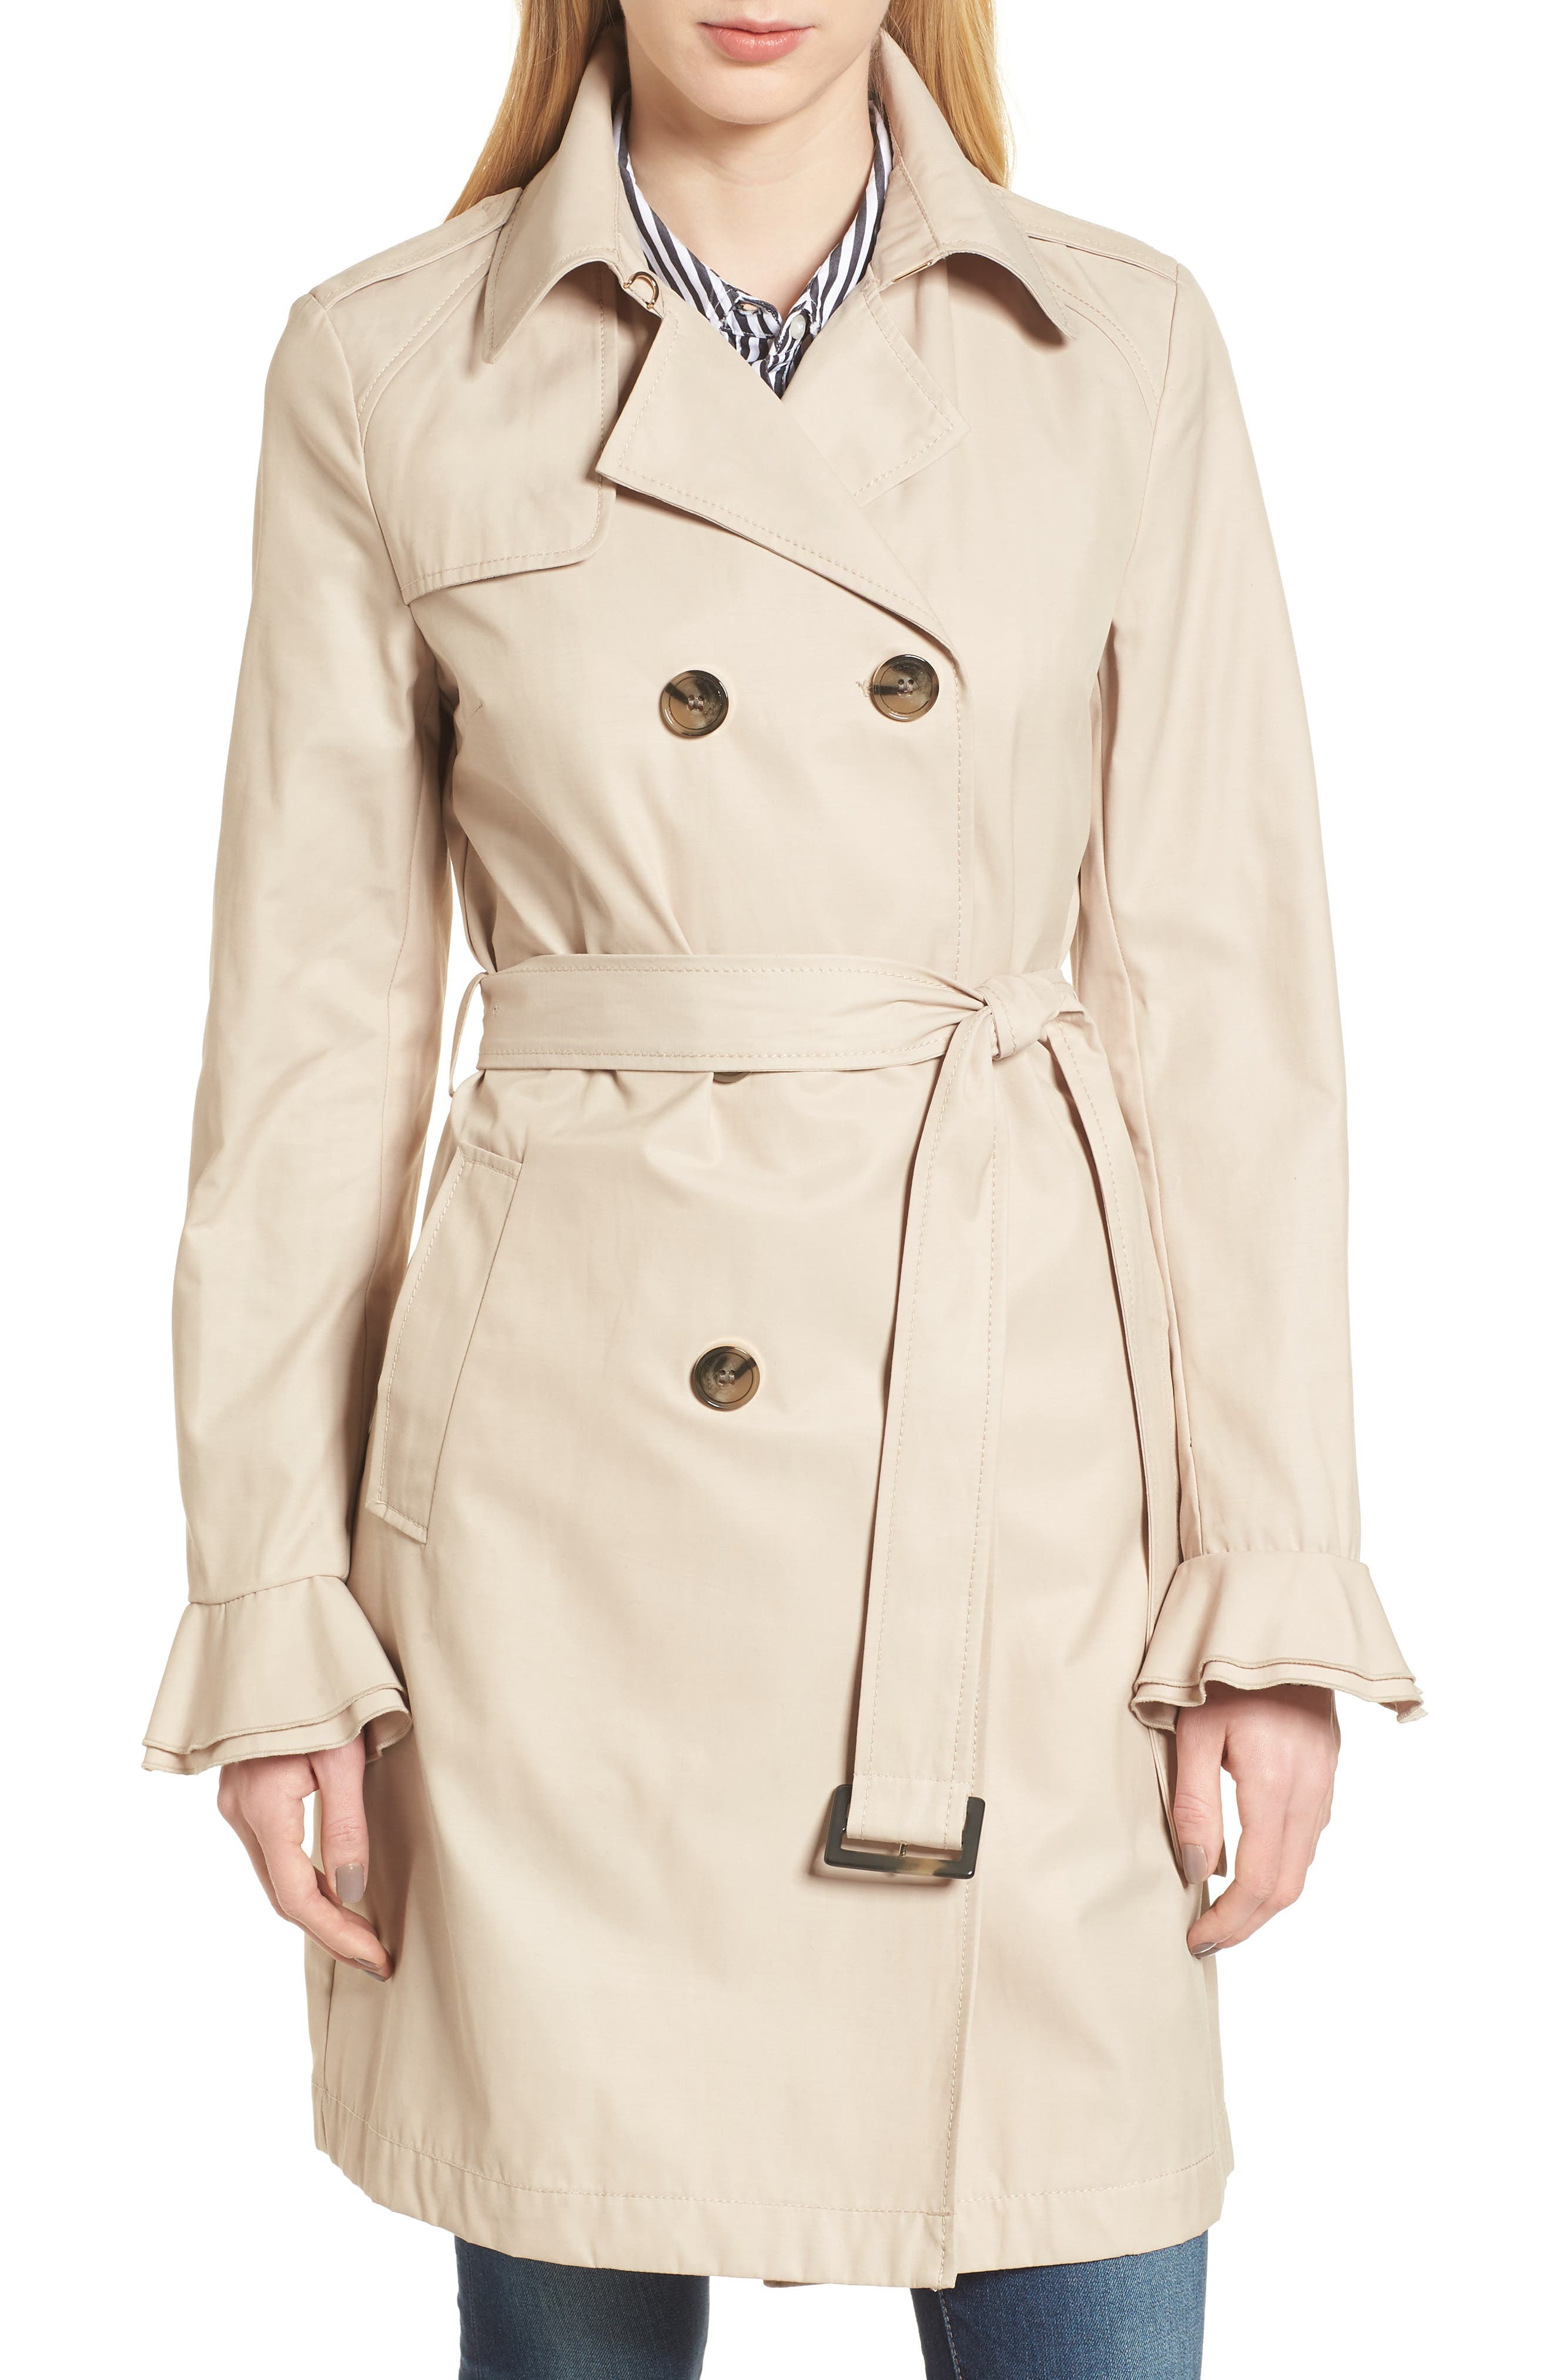 Stella Ruffle Sleeve Trench Coat,                             Main thumbnail 1, color,                             250